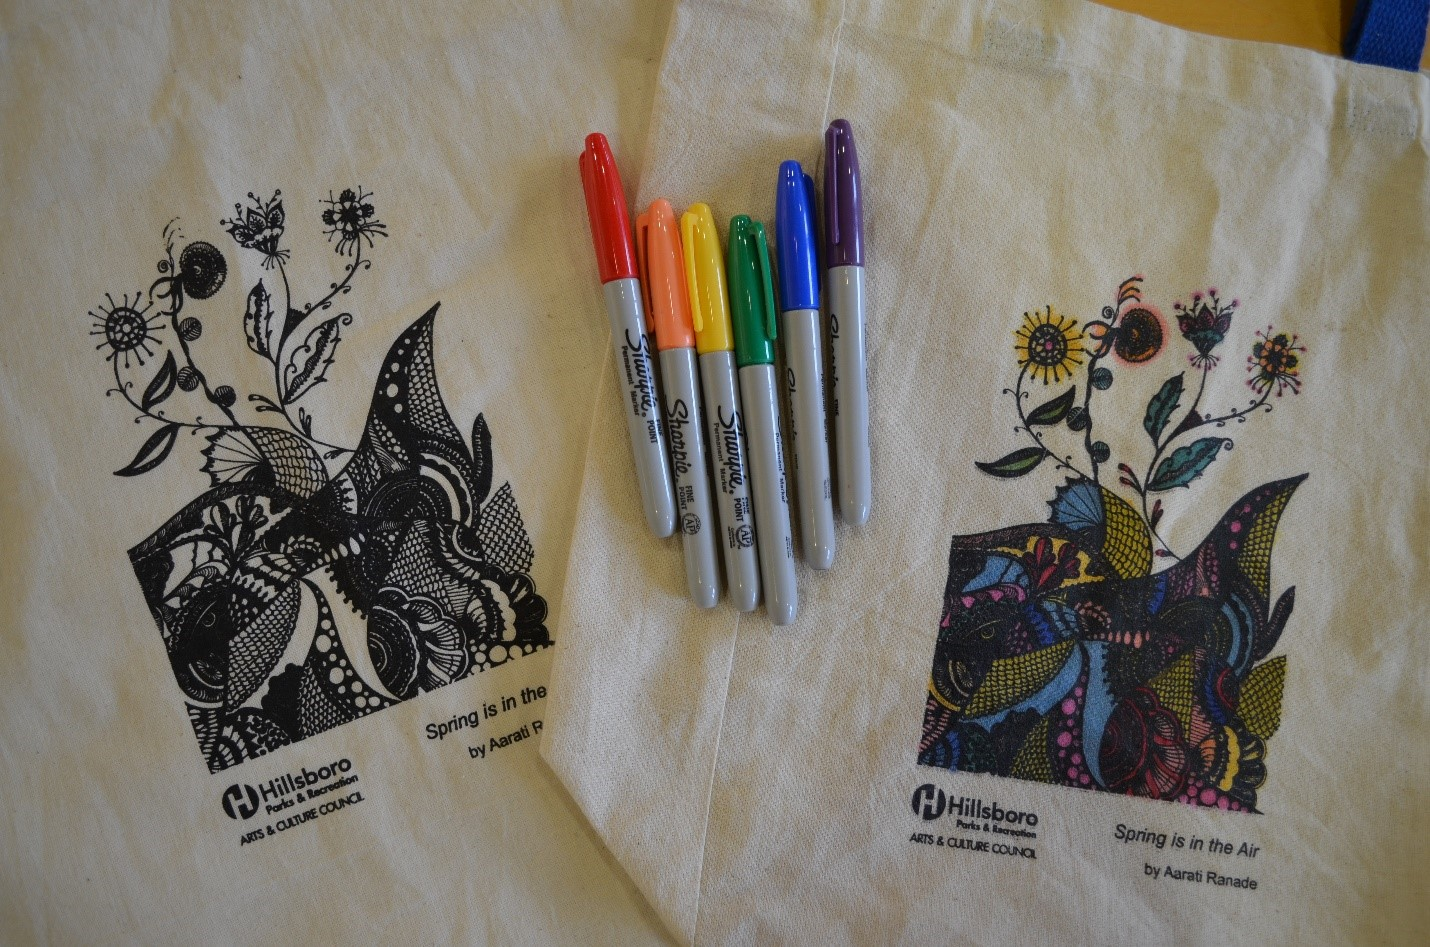 Last year's winning tote bag